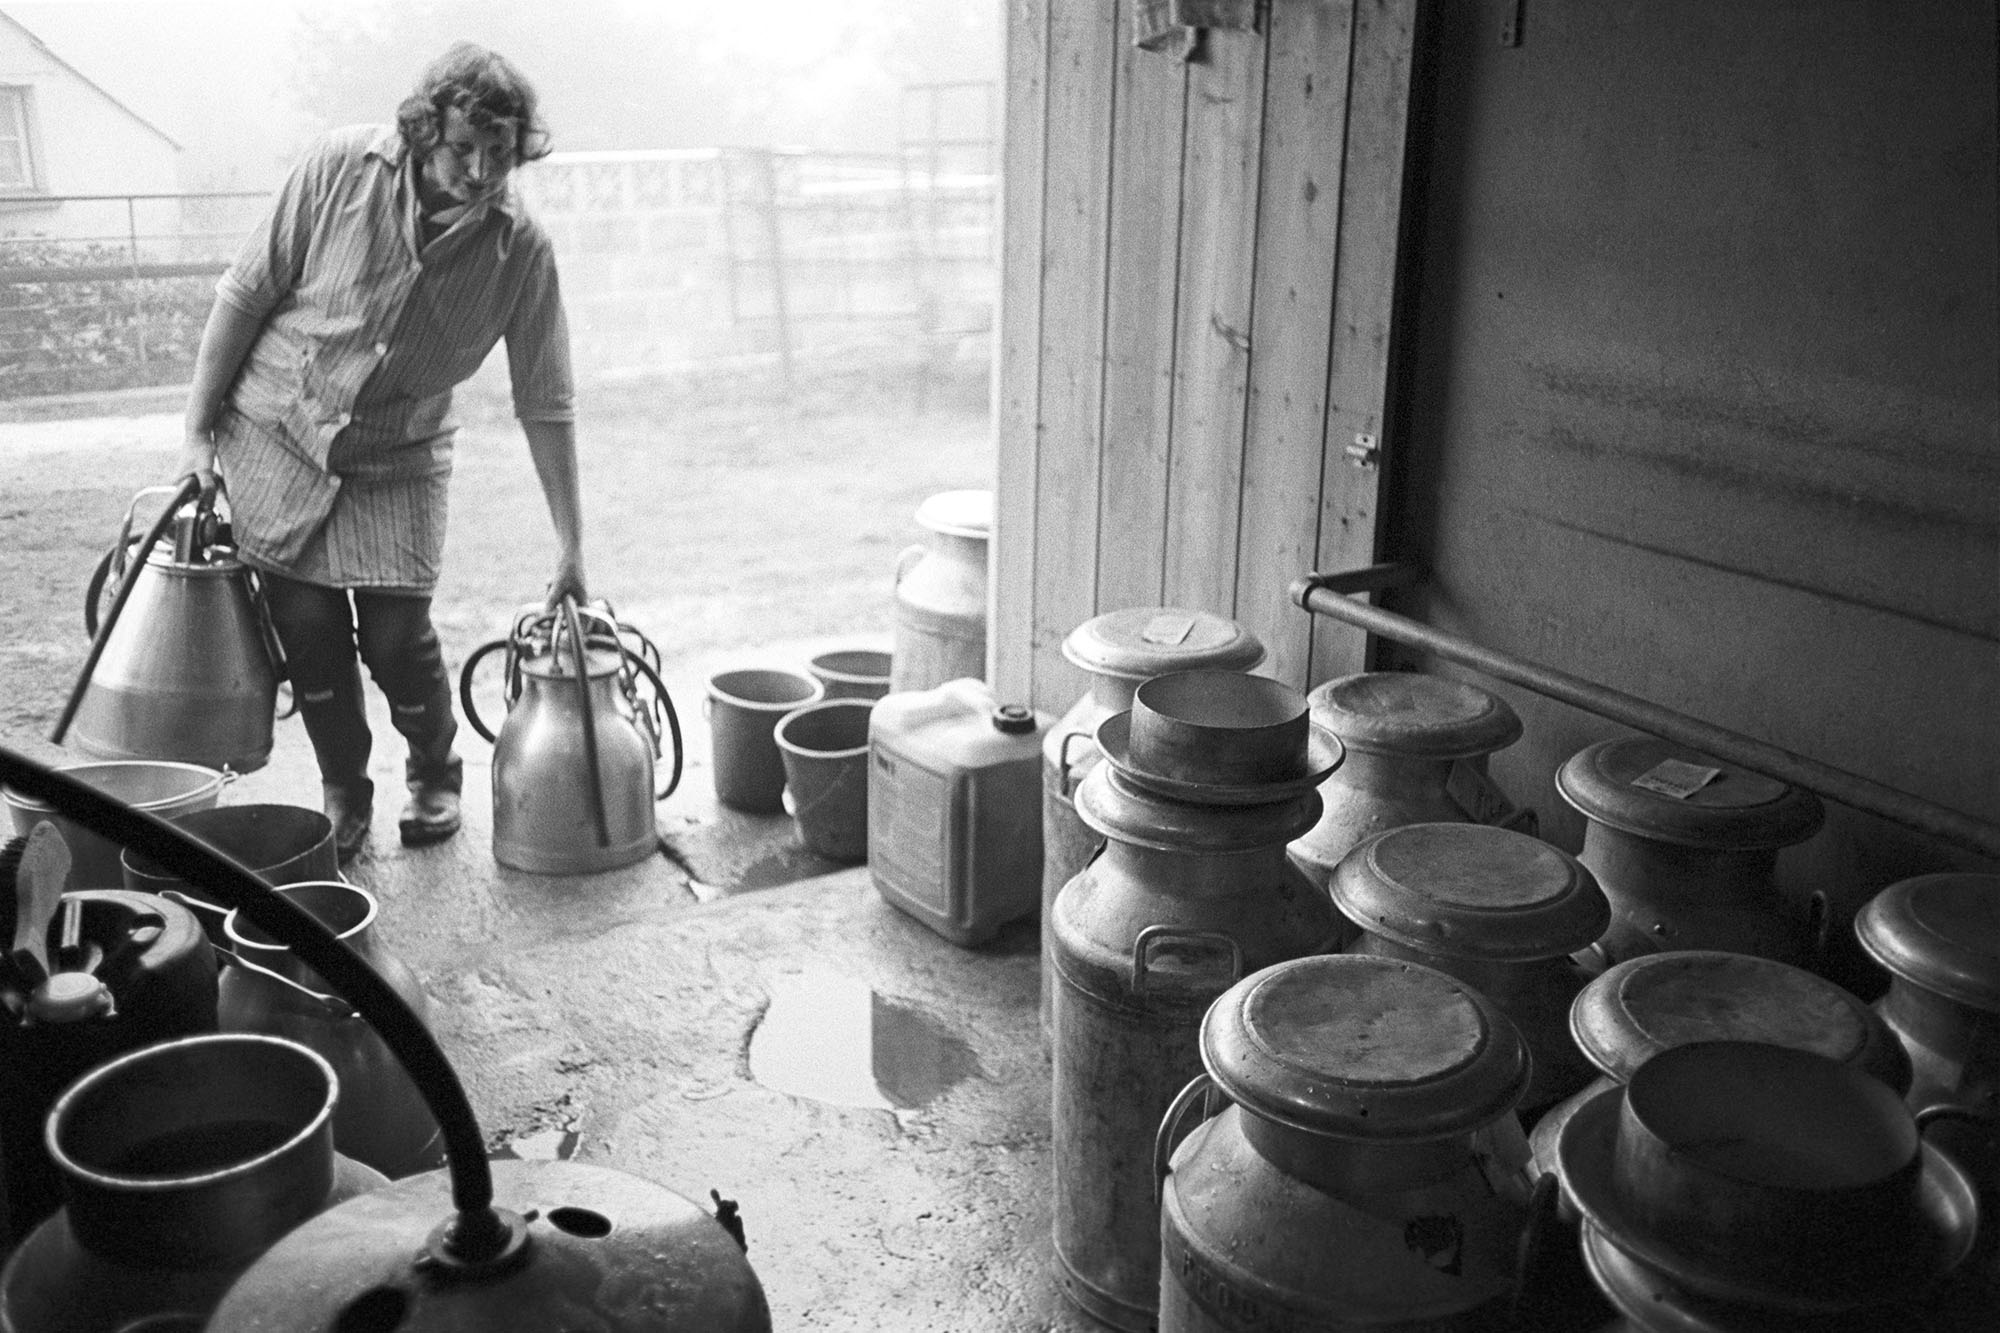 Farmers wife doing morning milking, churns and parlour with milking machine (bucket). <br /> [Valerie Medland doing the morning milking at Hall Court Farm, Petrockstowe. She is carrying milking machines and looking into a barn or dairy parlour with milk churns.]